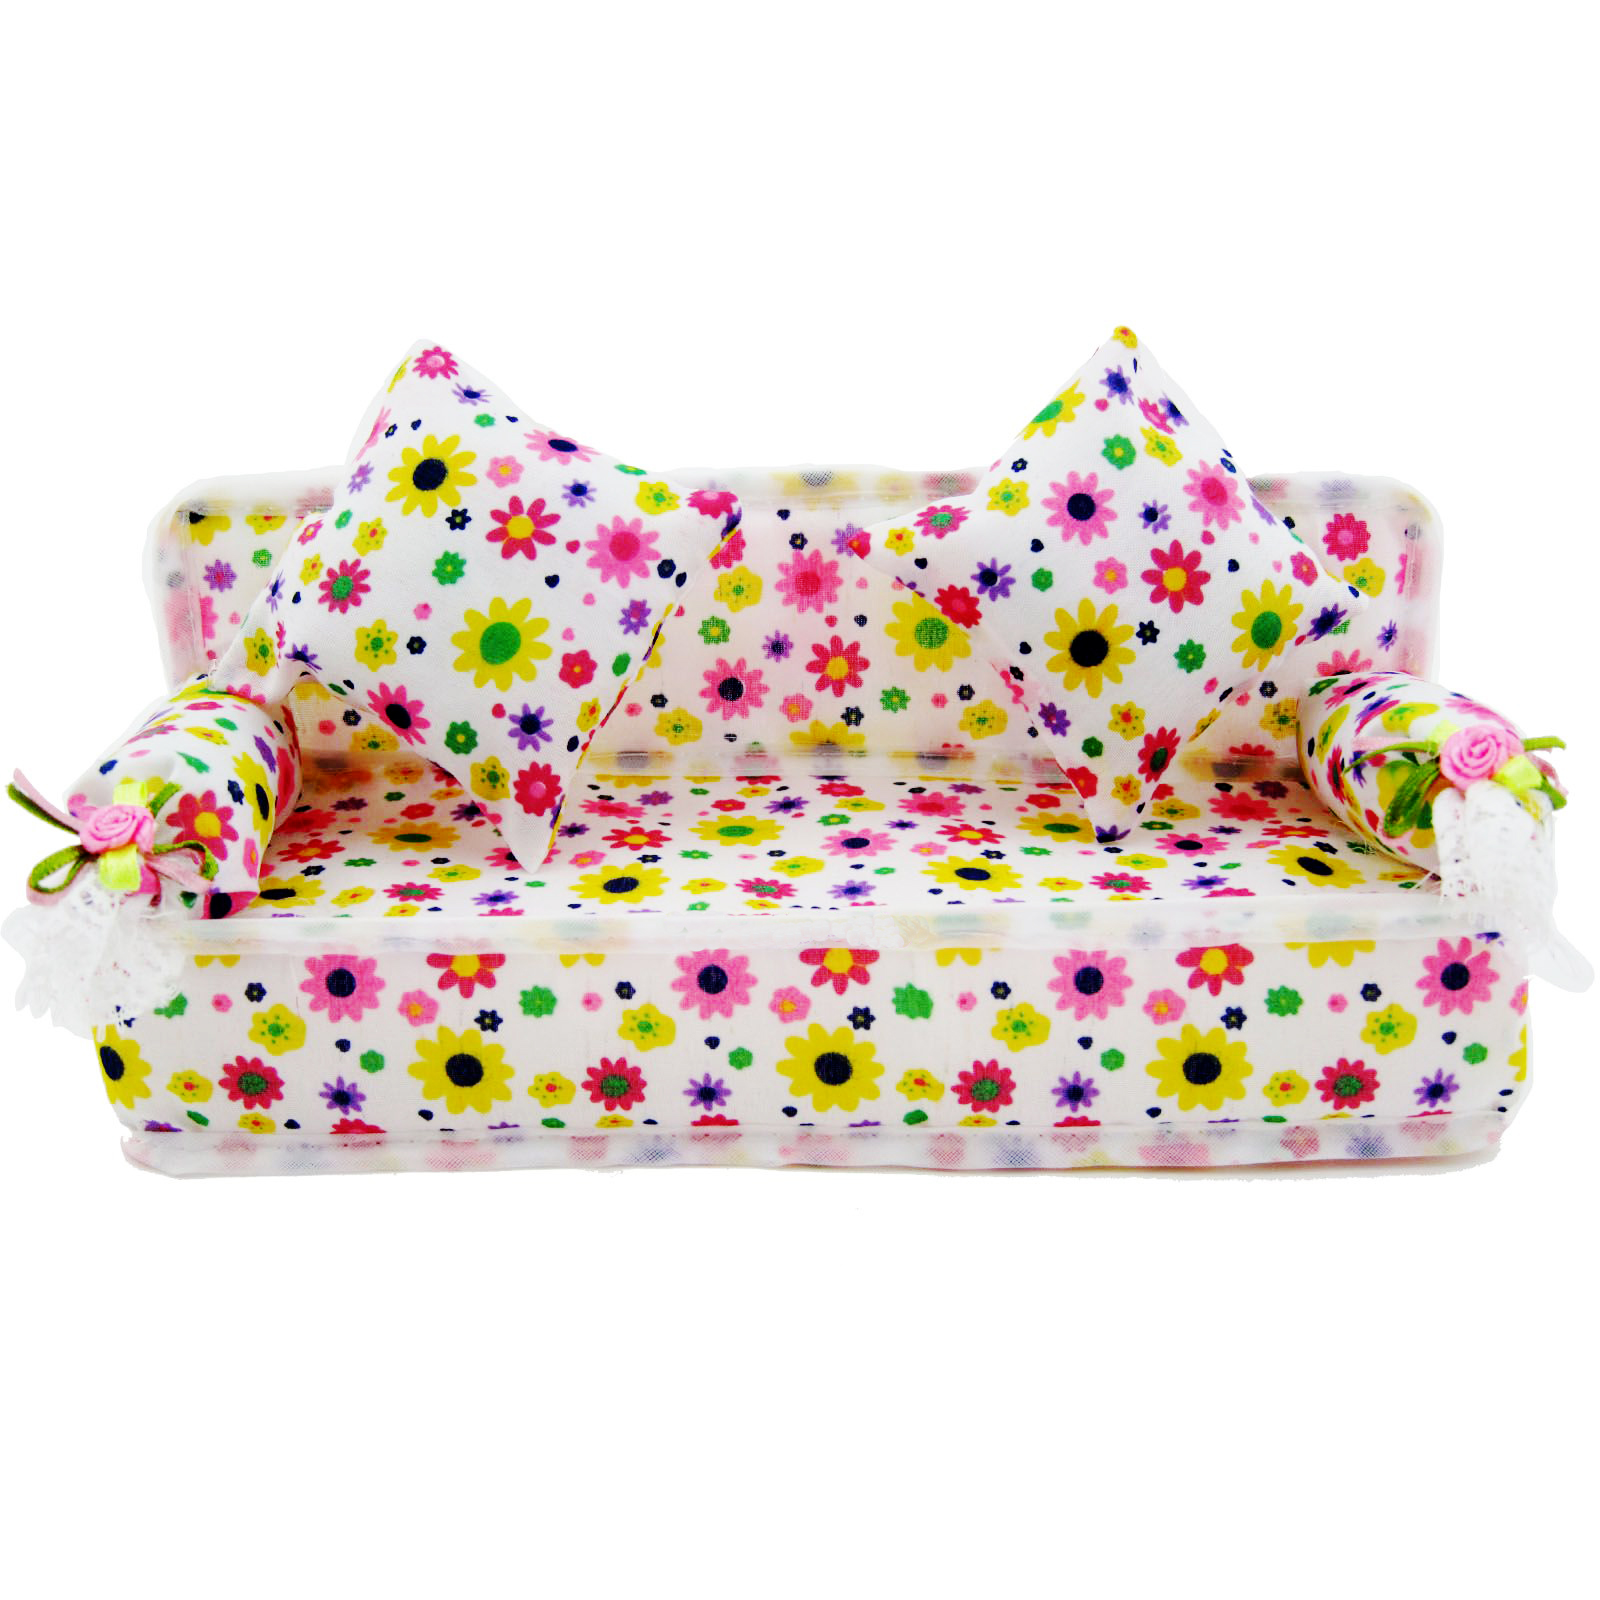 Free Shipping Cute Furniture Dollhouse Furniture Flower Cloth Sofa Couch With 2 Cushions For Barbie Doll DIY Accessories Toy